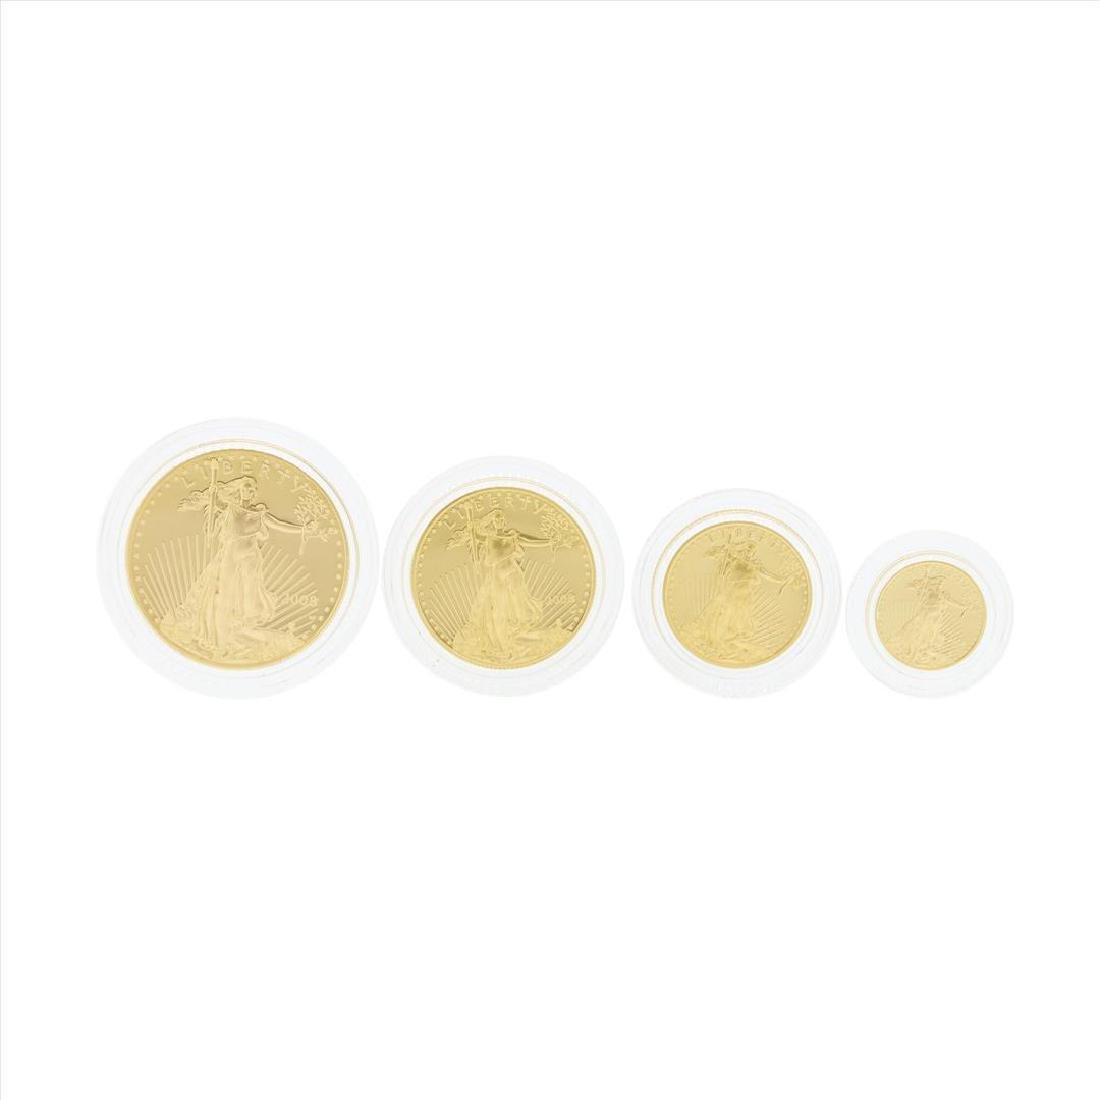 2008 (4) Coin American Gold Eagle Proof Coin Set with - 2